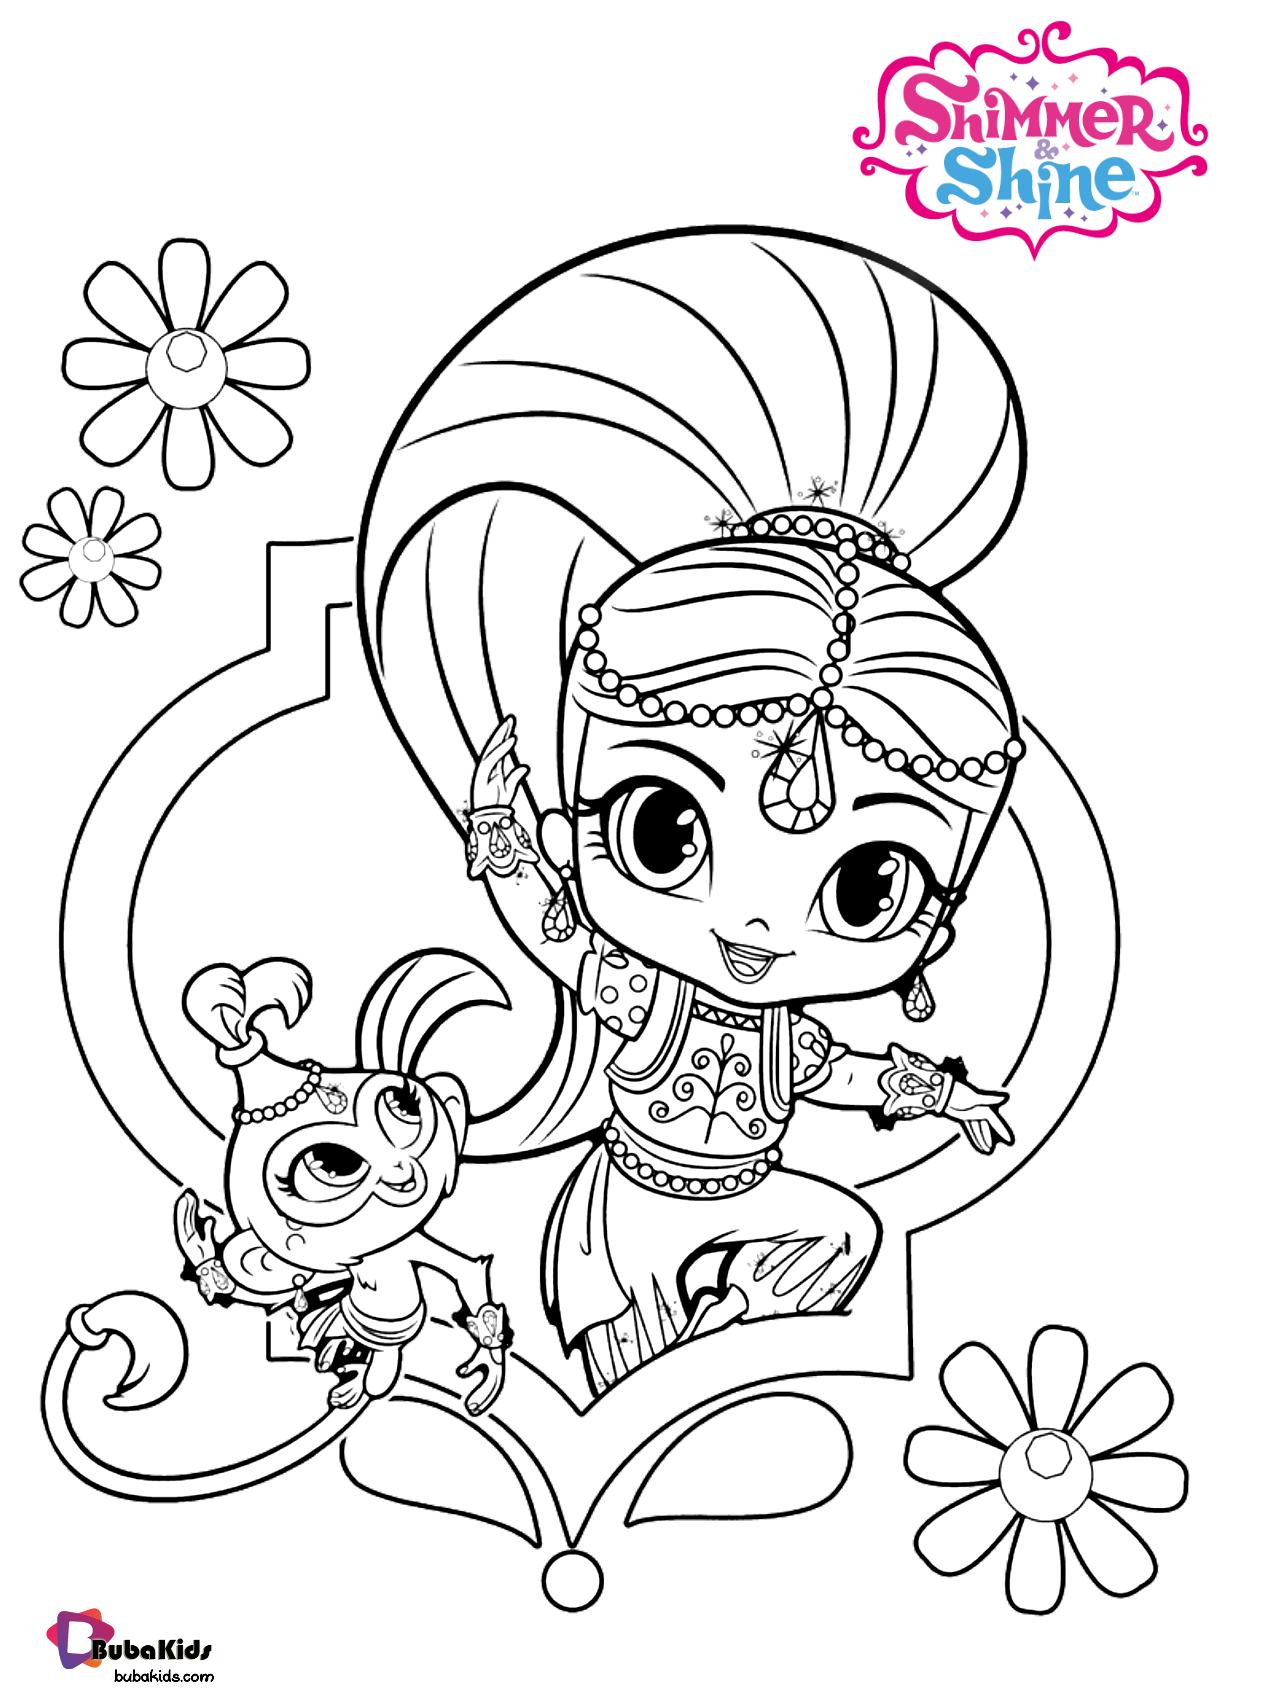 Nick Jr Shimmer And Shine Free Download And Printable Coloring Page Collection Of Ca Monkey Coloring Pages Coloring Pages Inspirational Cartoon Coloring Pages